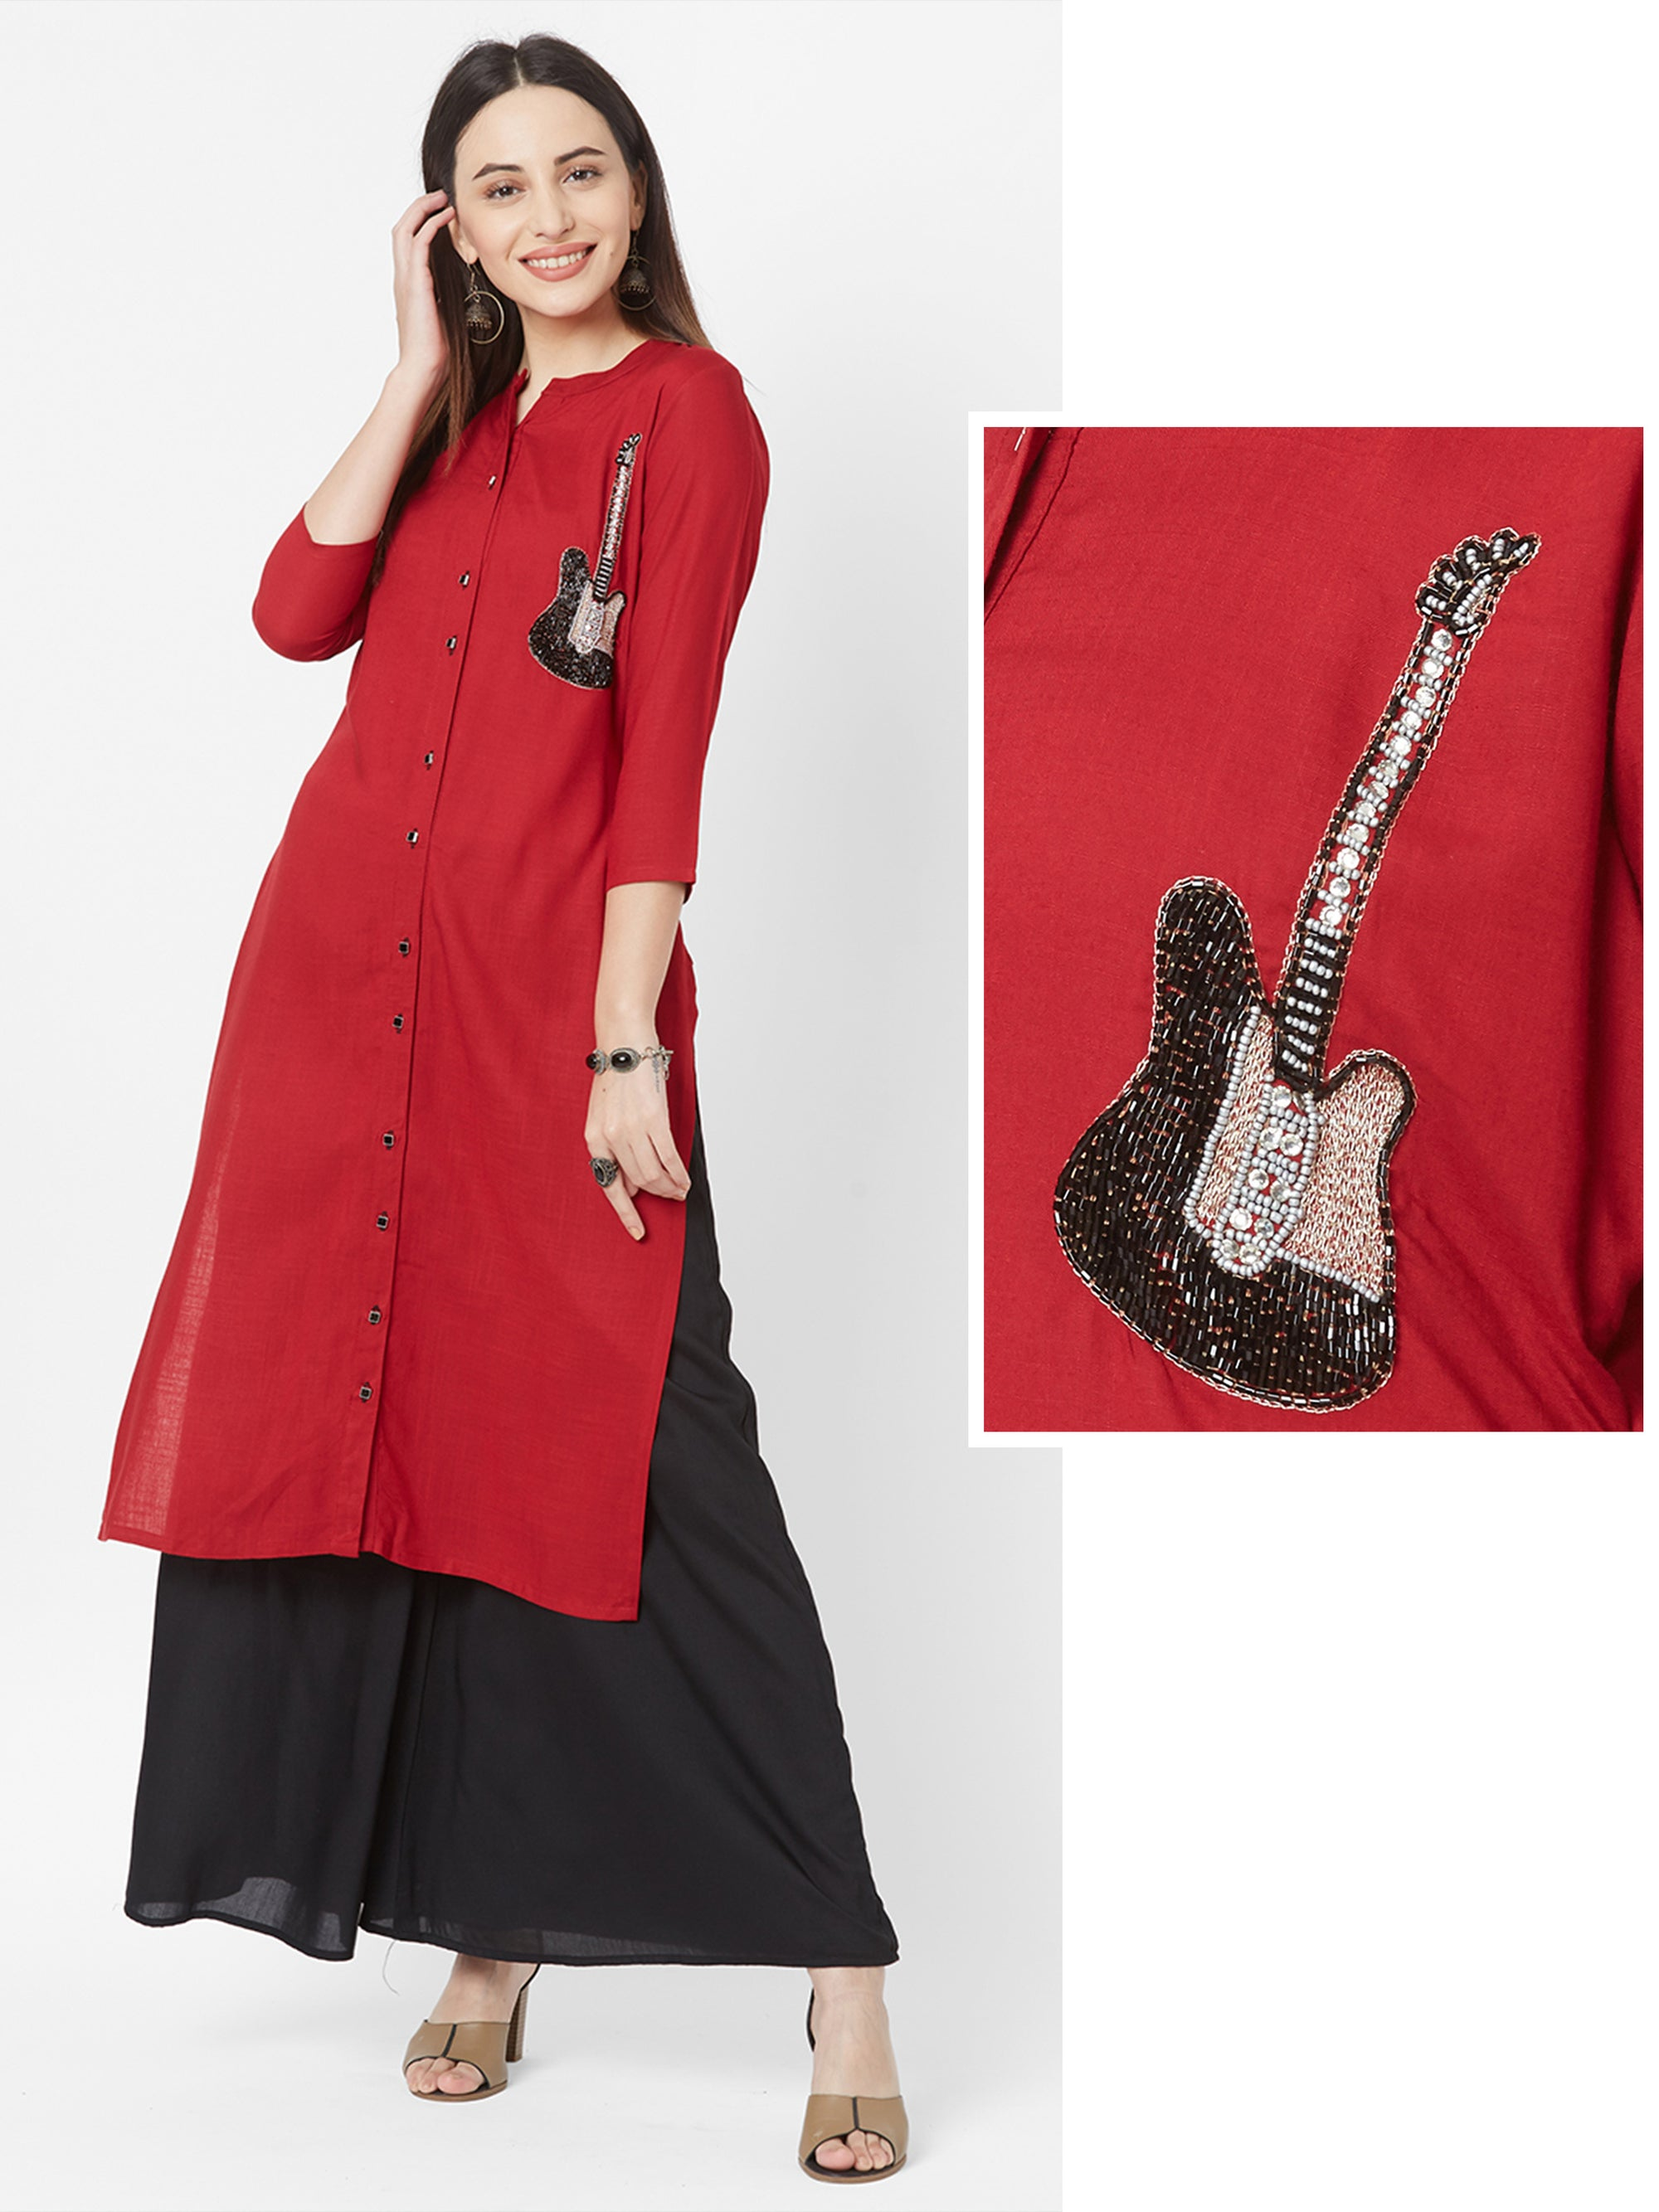 Cutdana Detailed Guitar Embellished Kurti